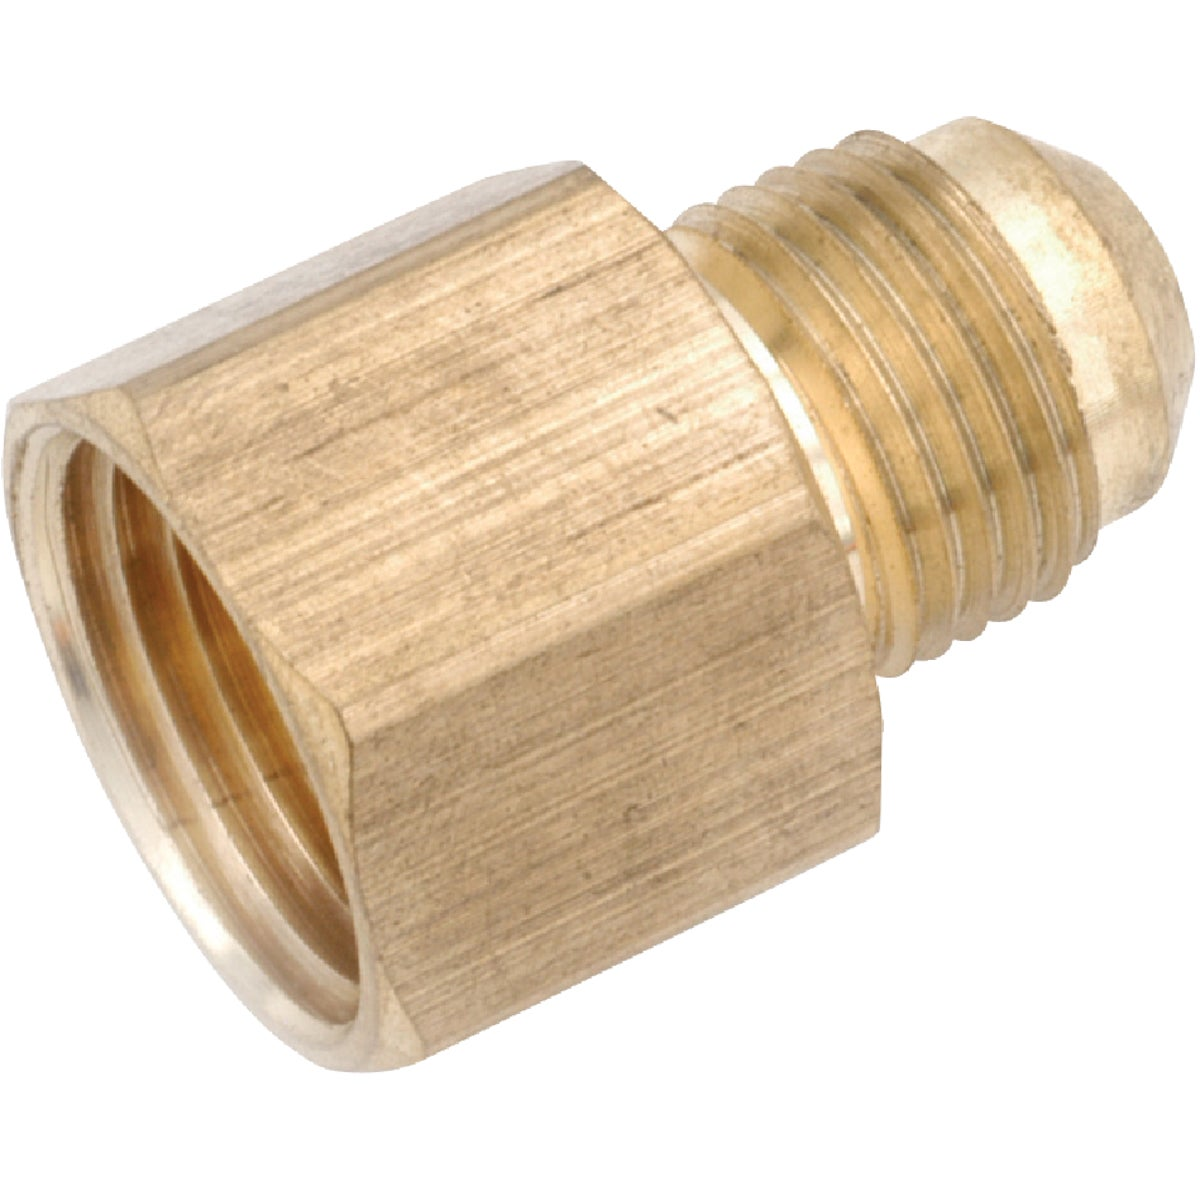 5/8X1/2 FIP CONNECTOR - 754046-1008 by Anderson Metals Corp